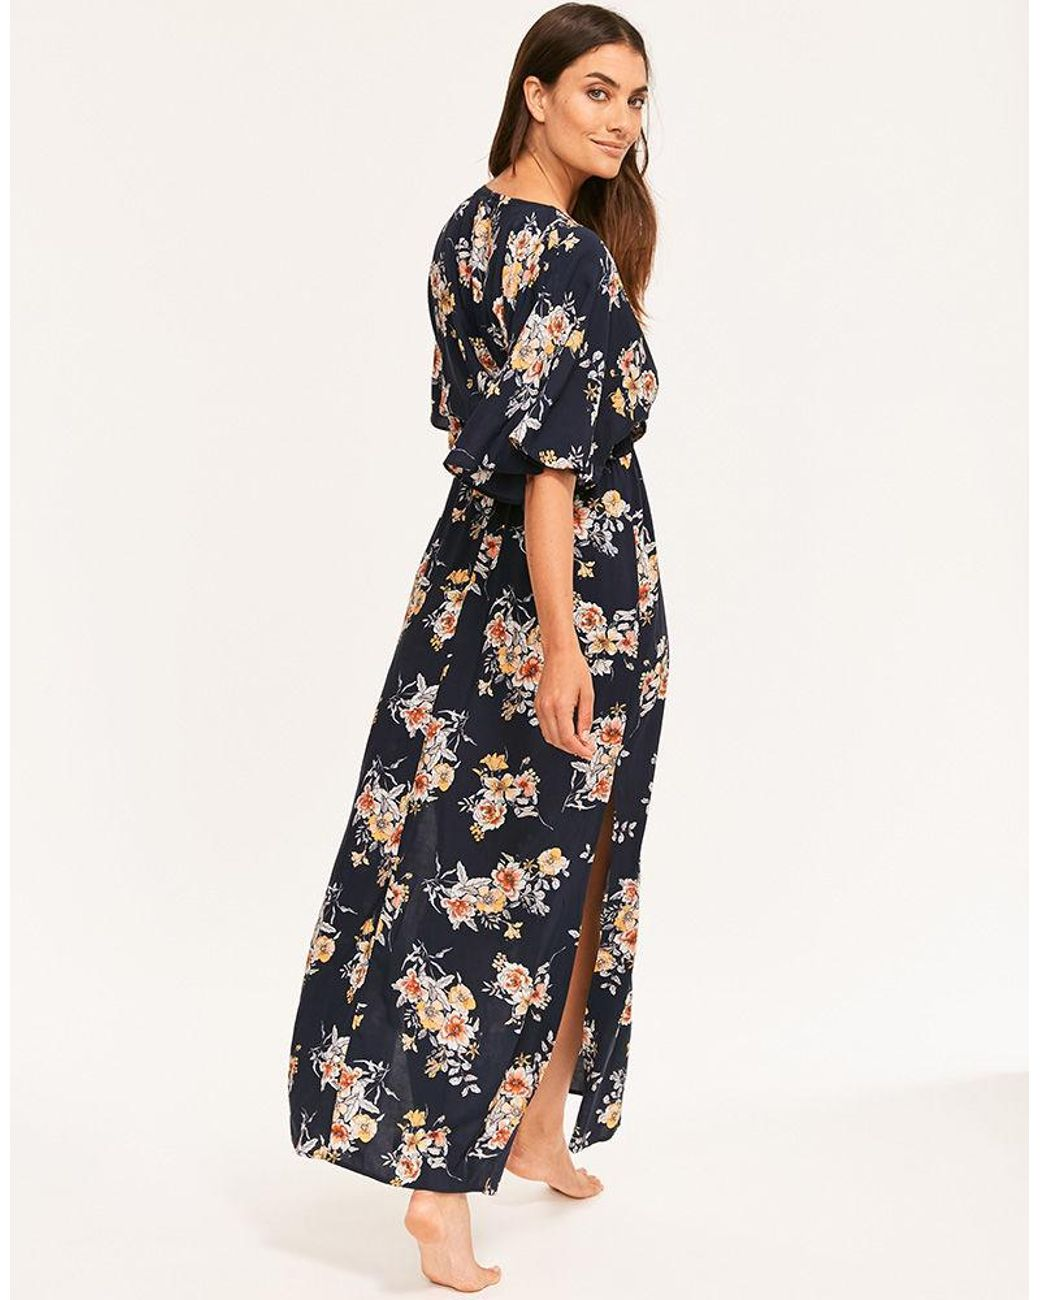 1abe876743 Seafolly Mid Summer Floral Maxi Dress in Blue - Lyst